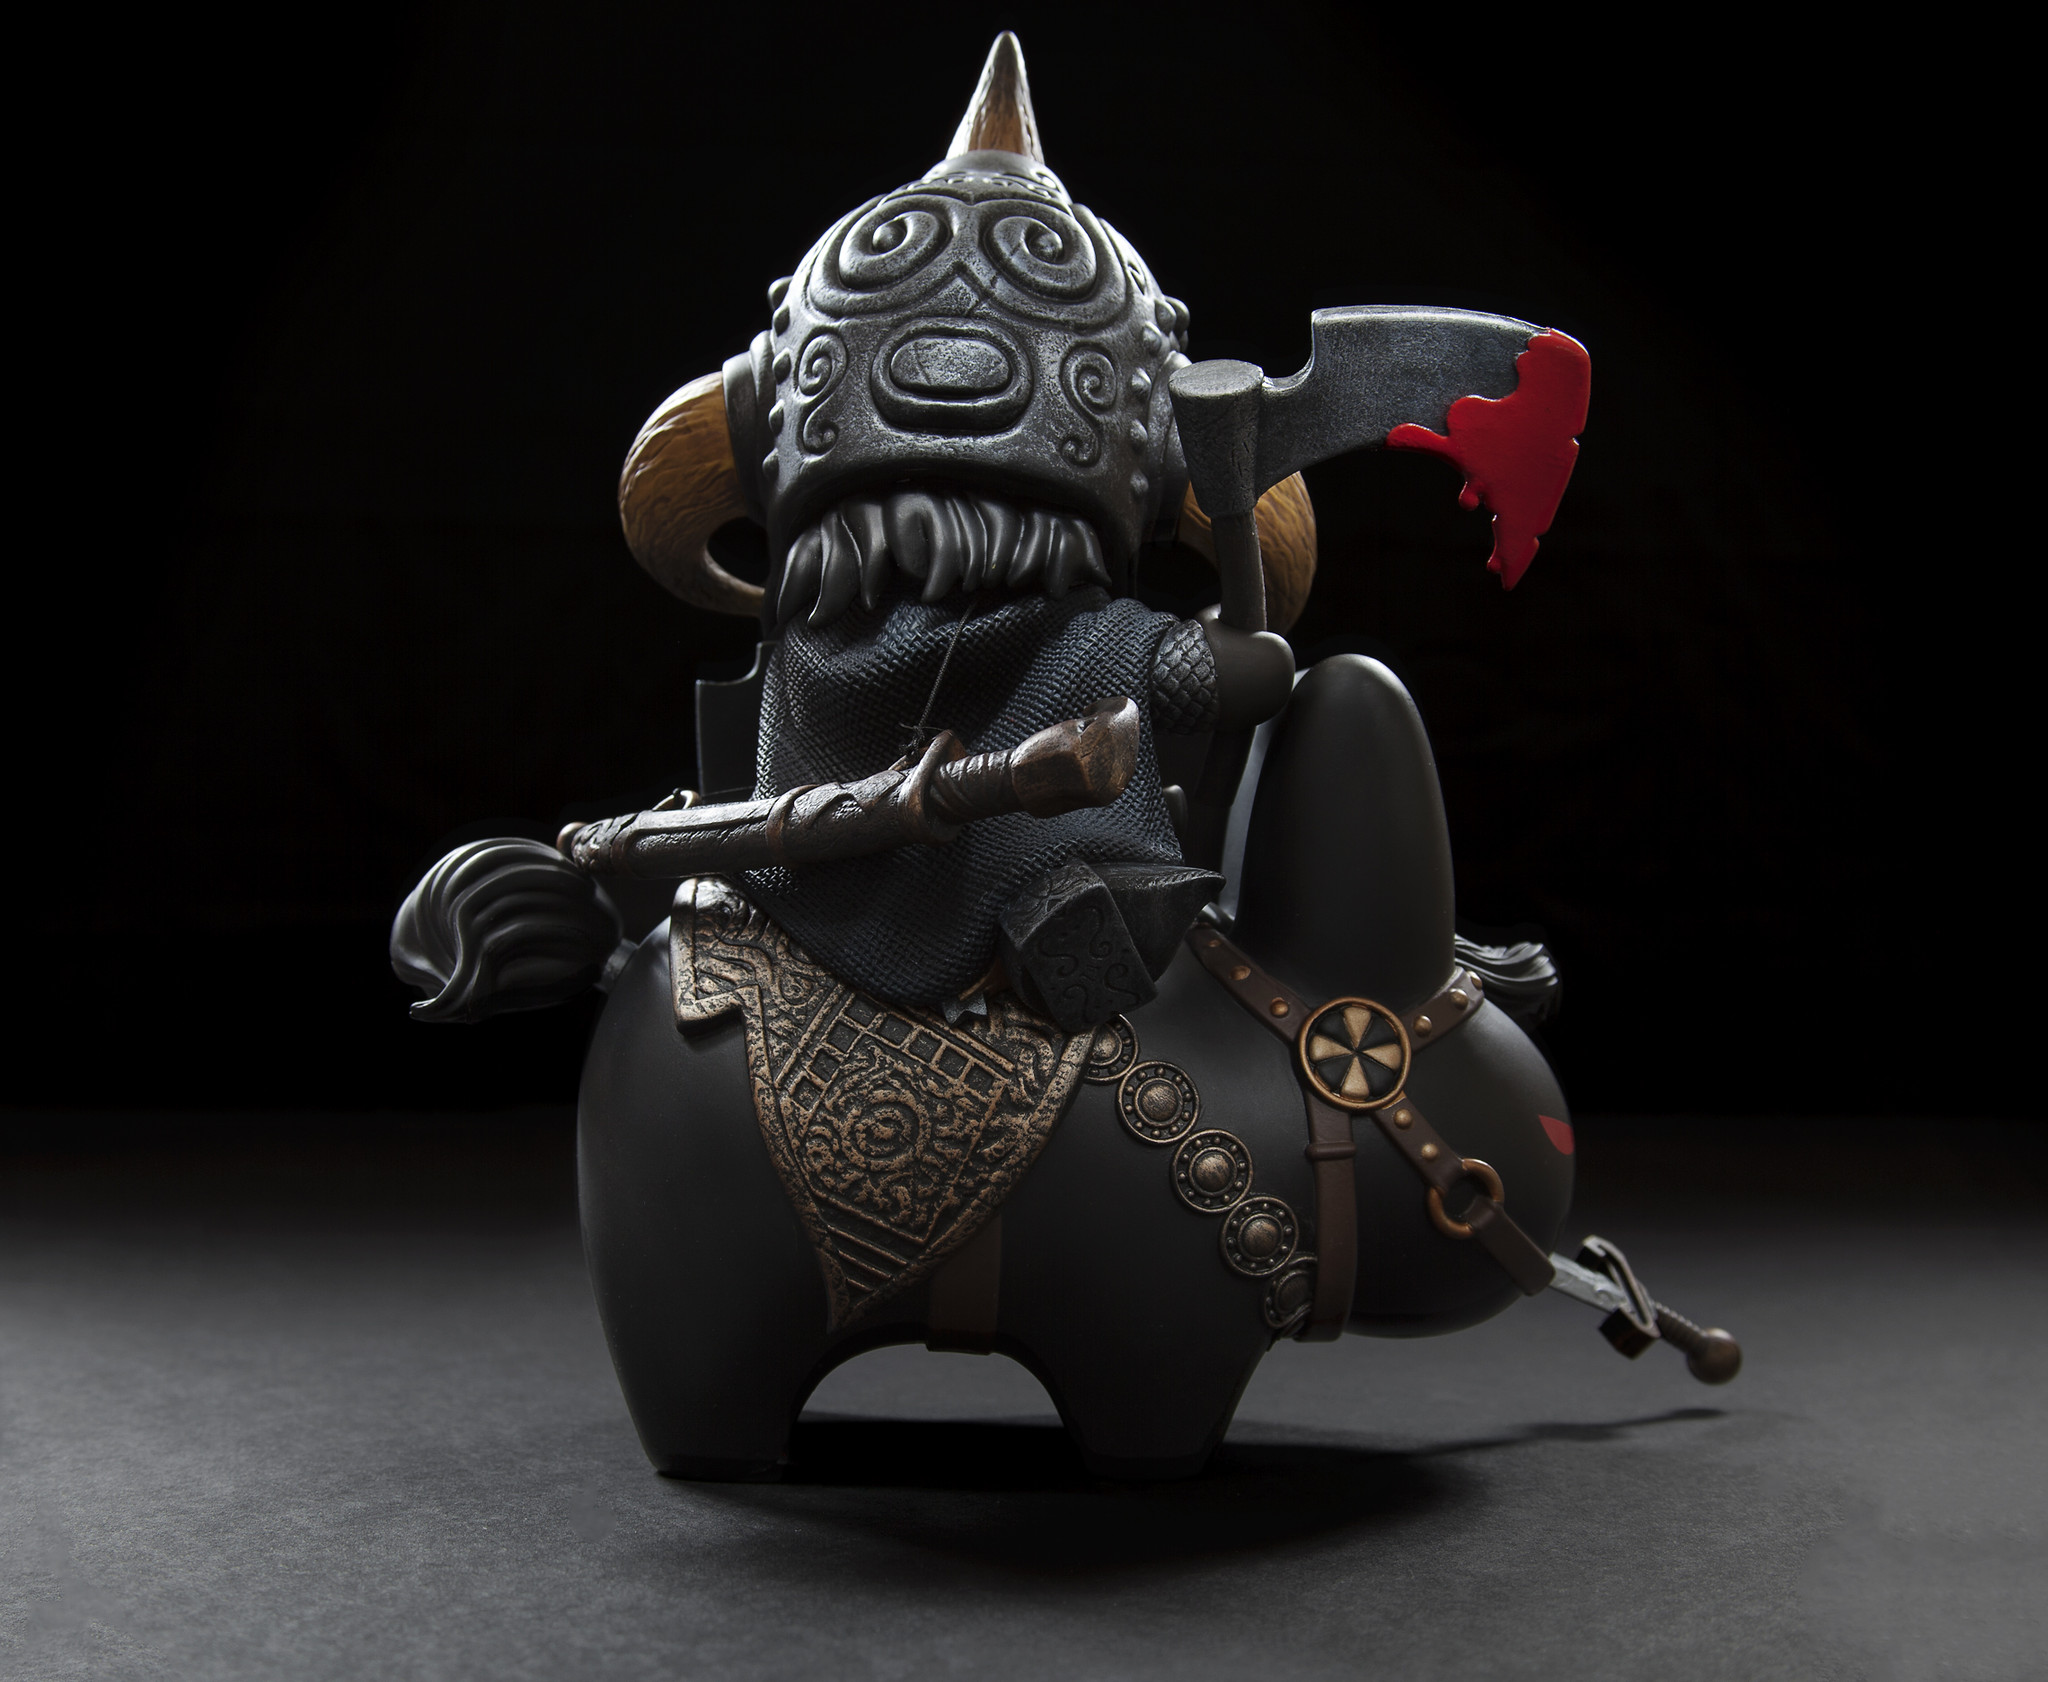 vinyl-frazetta-death-dealer-medium-figure-by-frank-kozik-4.jpg